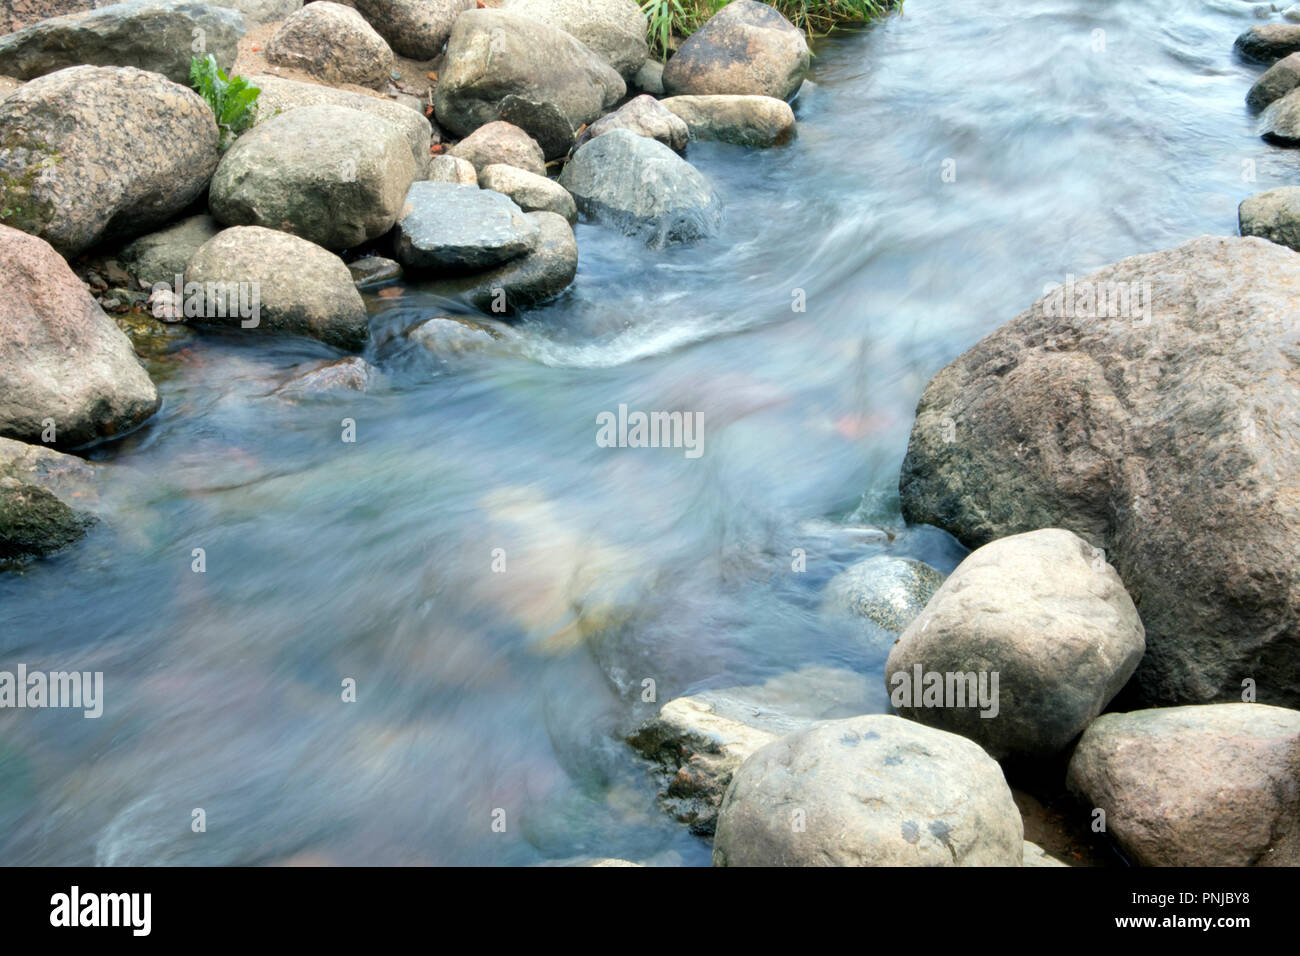 Small creek with stony bottom, rapid stream running between boulders, smoothed water surface Stock Photo